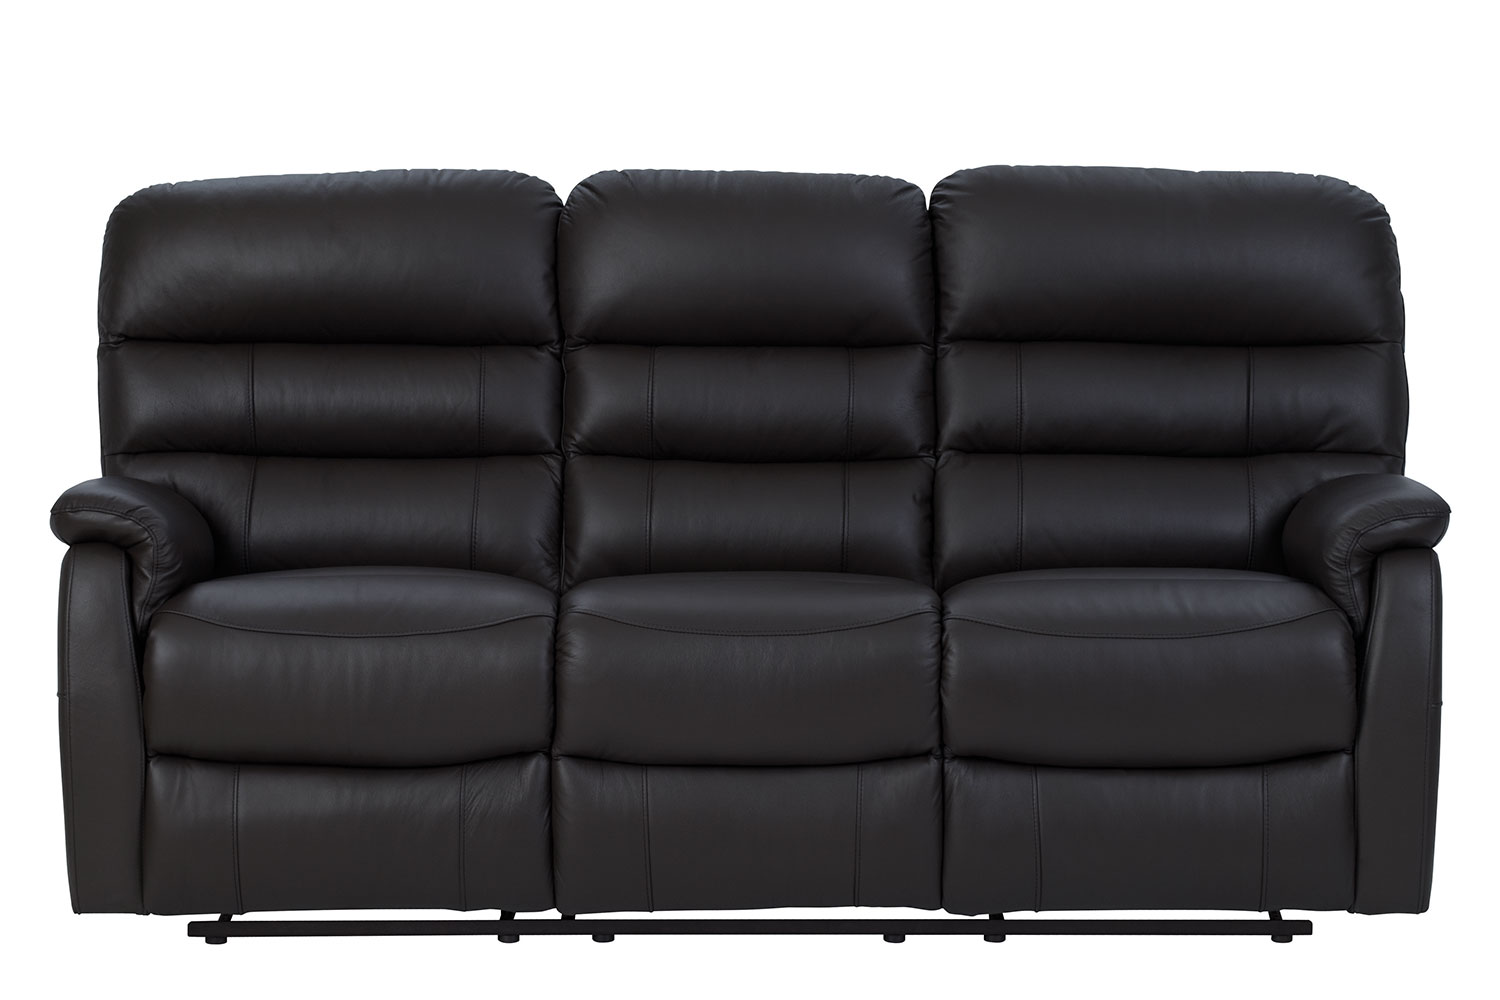 Leather Sofa Wellington Nz Sofas Leather Sofa Sofa Beds Couch Harvey Norman New Zealand